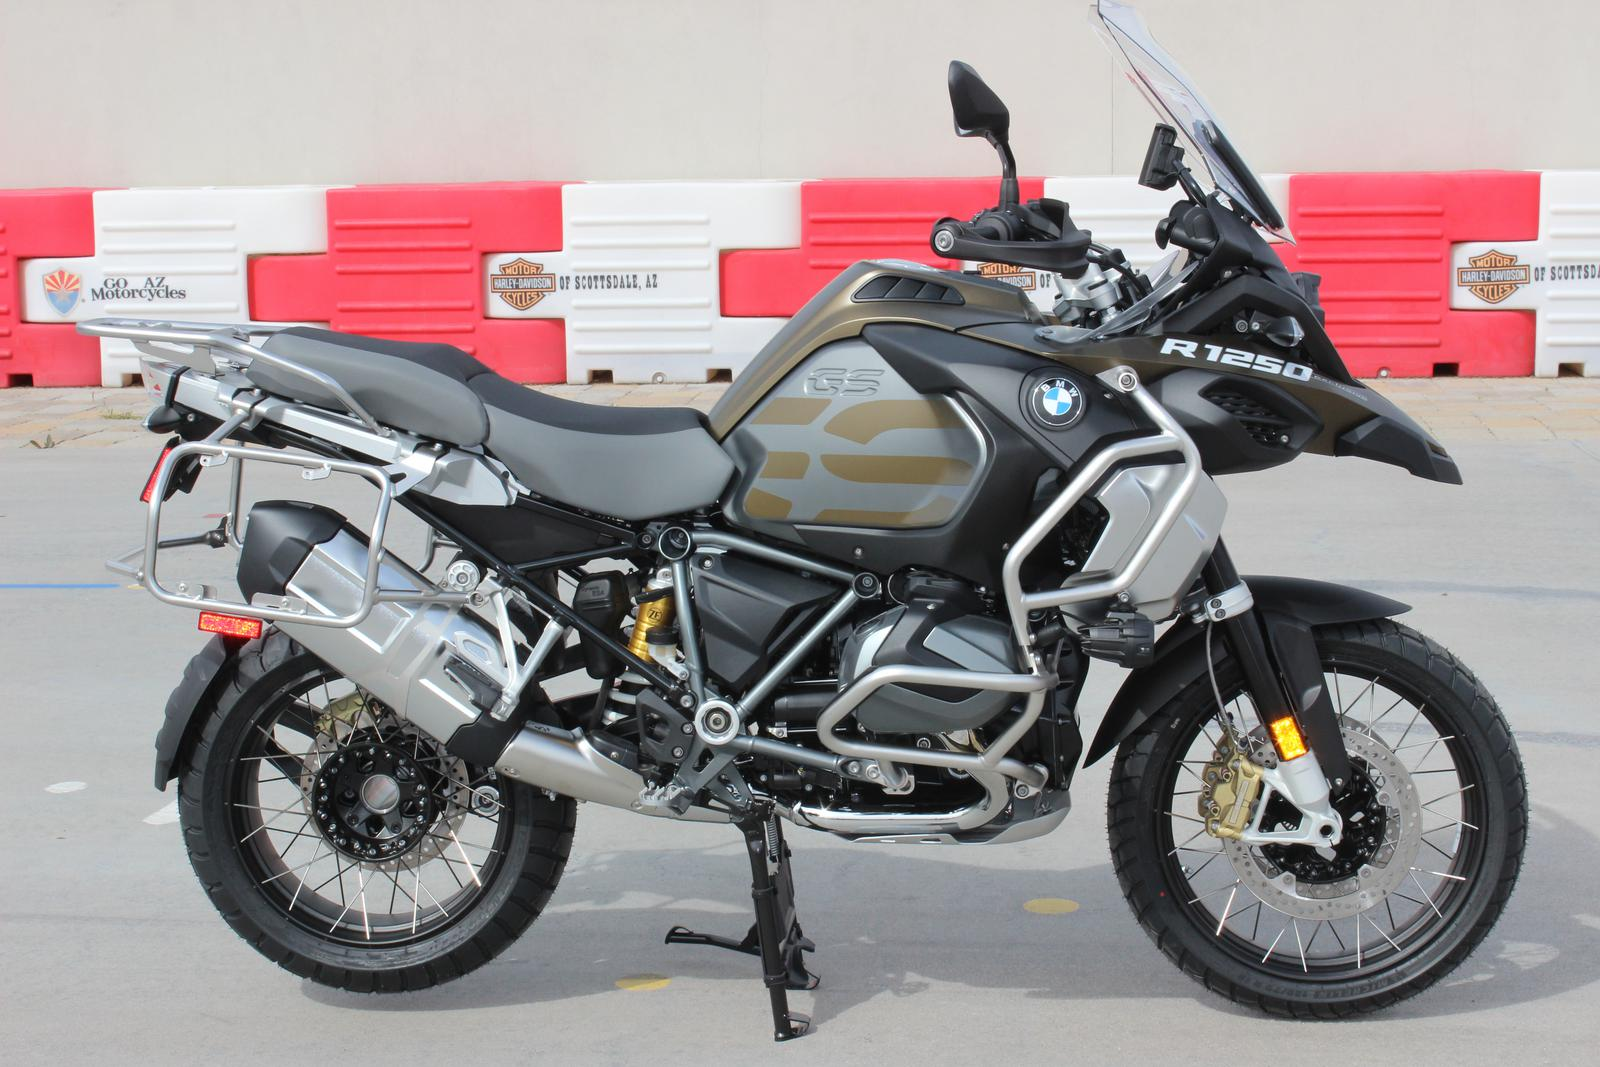 Remarkable 2019 Bmw R1250Gsa Ocoug Best Dining Table And Chair Ideas Images Ocougorg